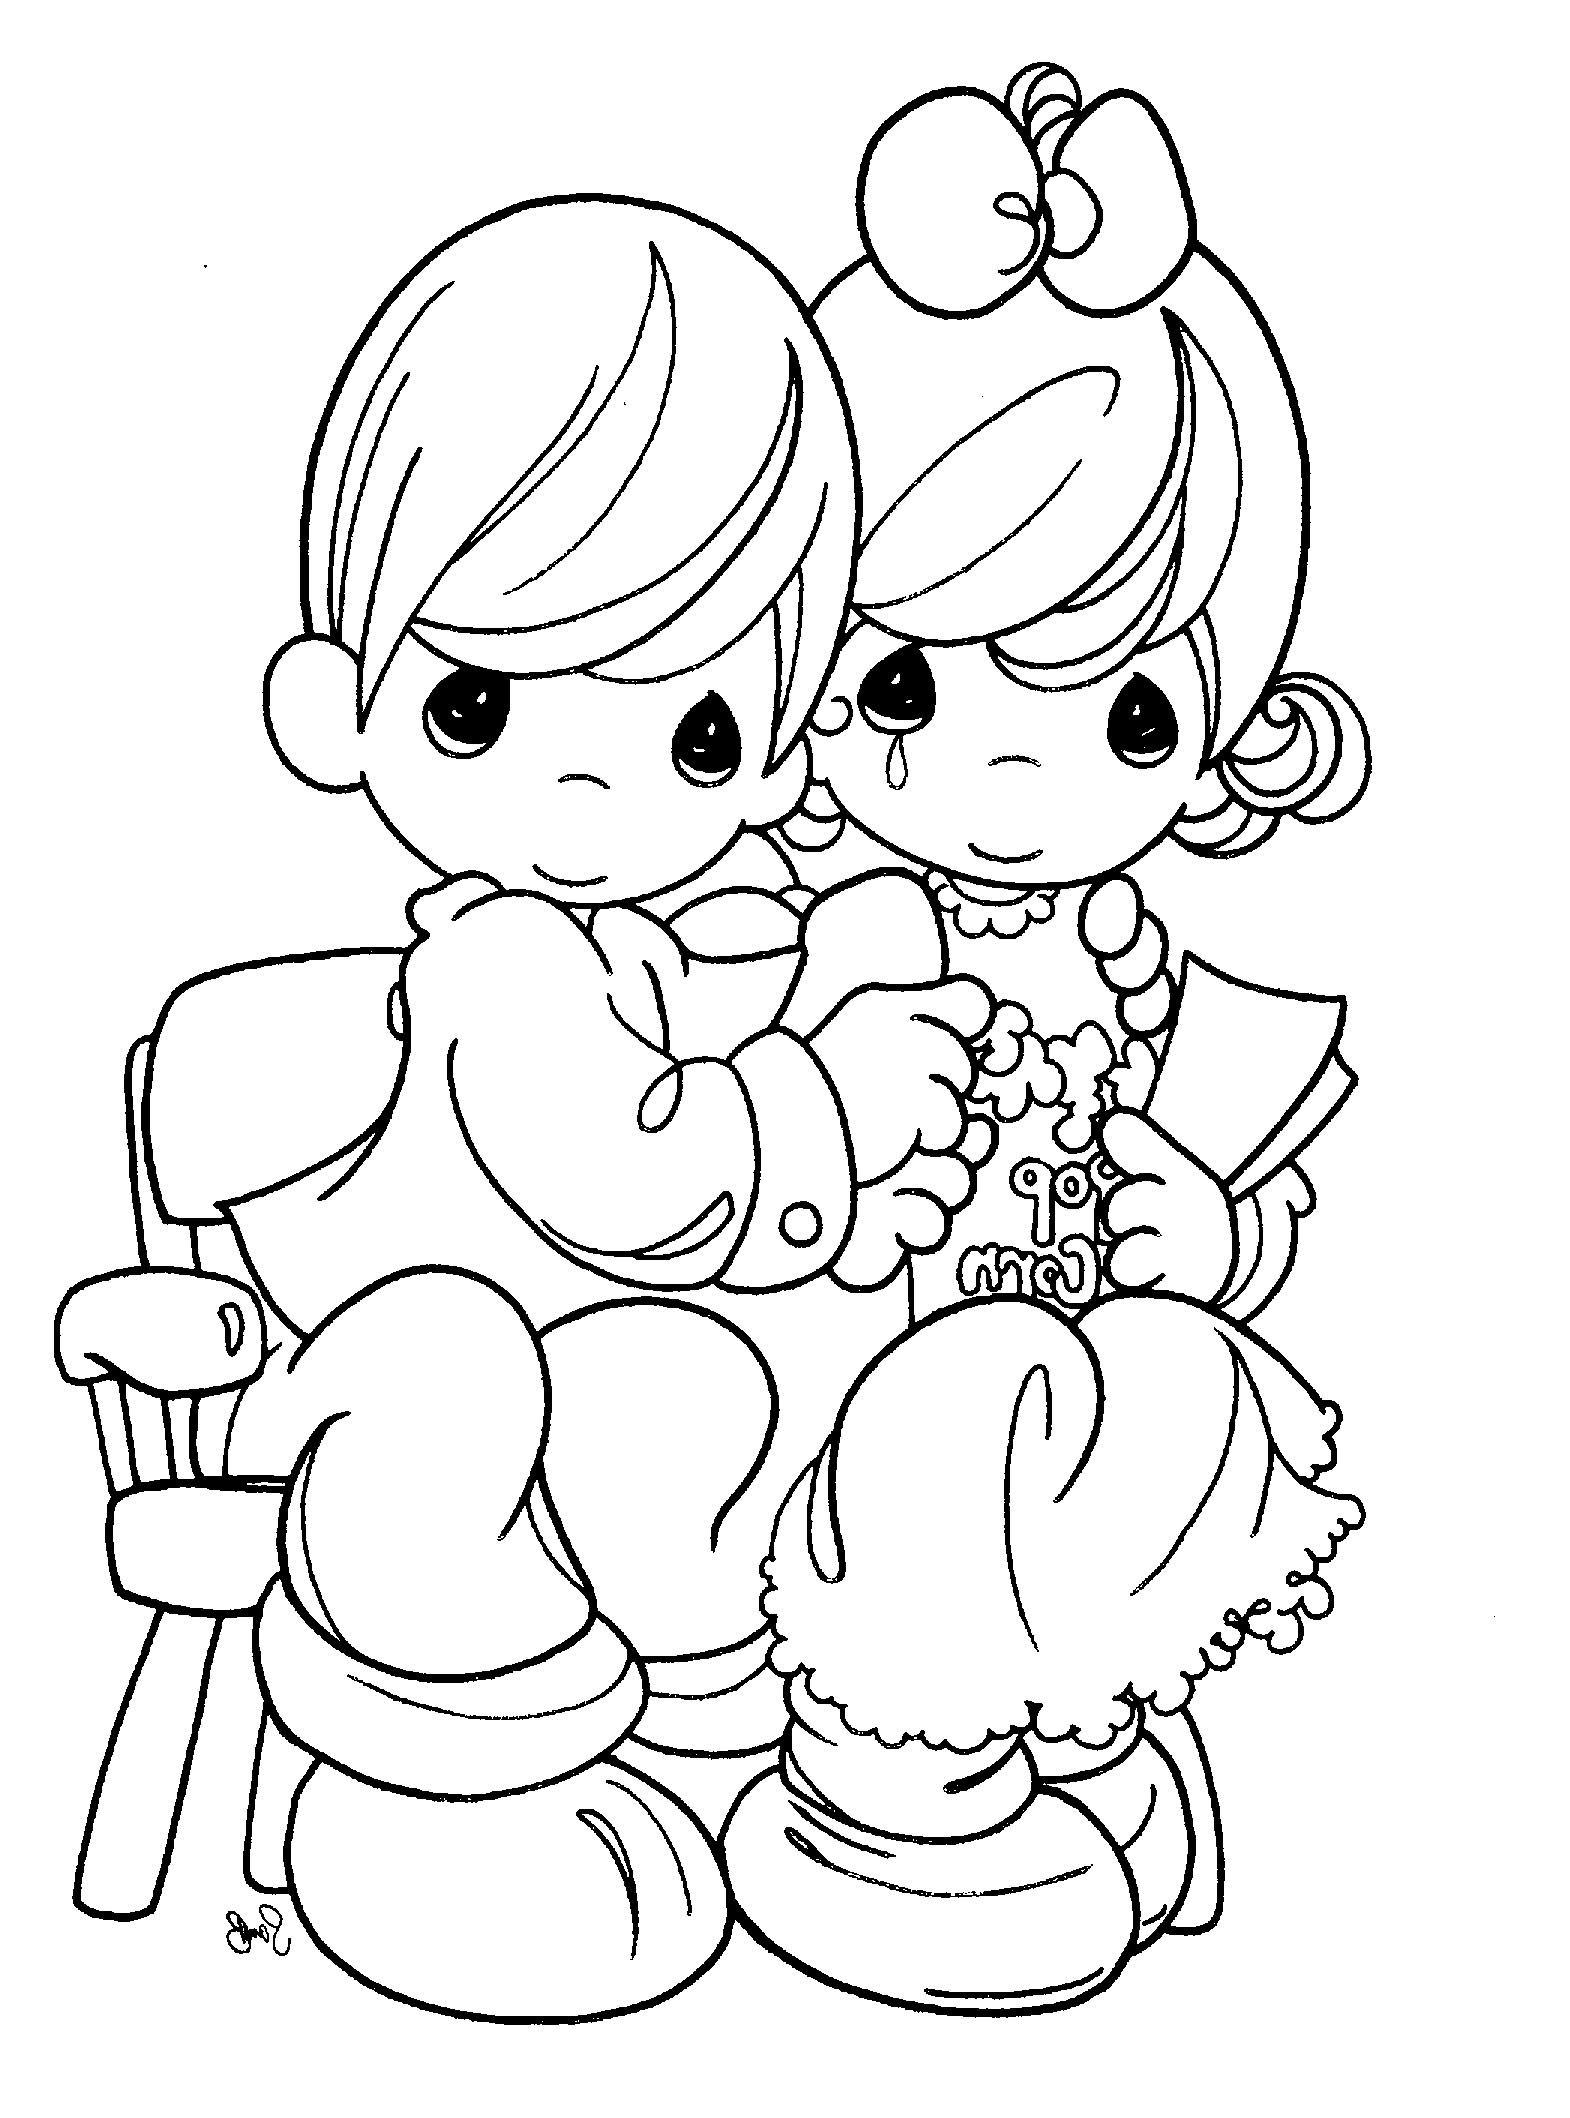 Precious Moments Coloring Pages Are Being Embraced | Precious ...